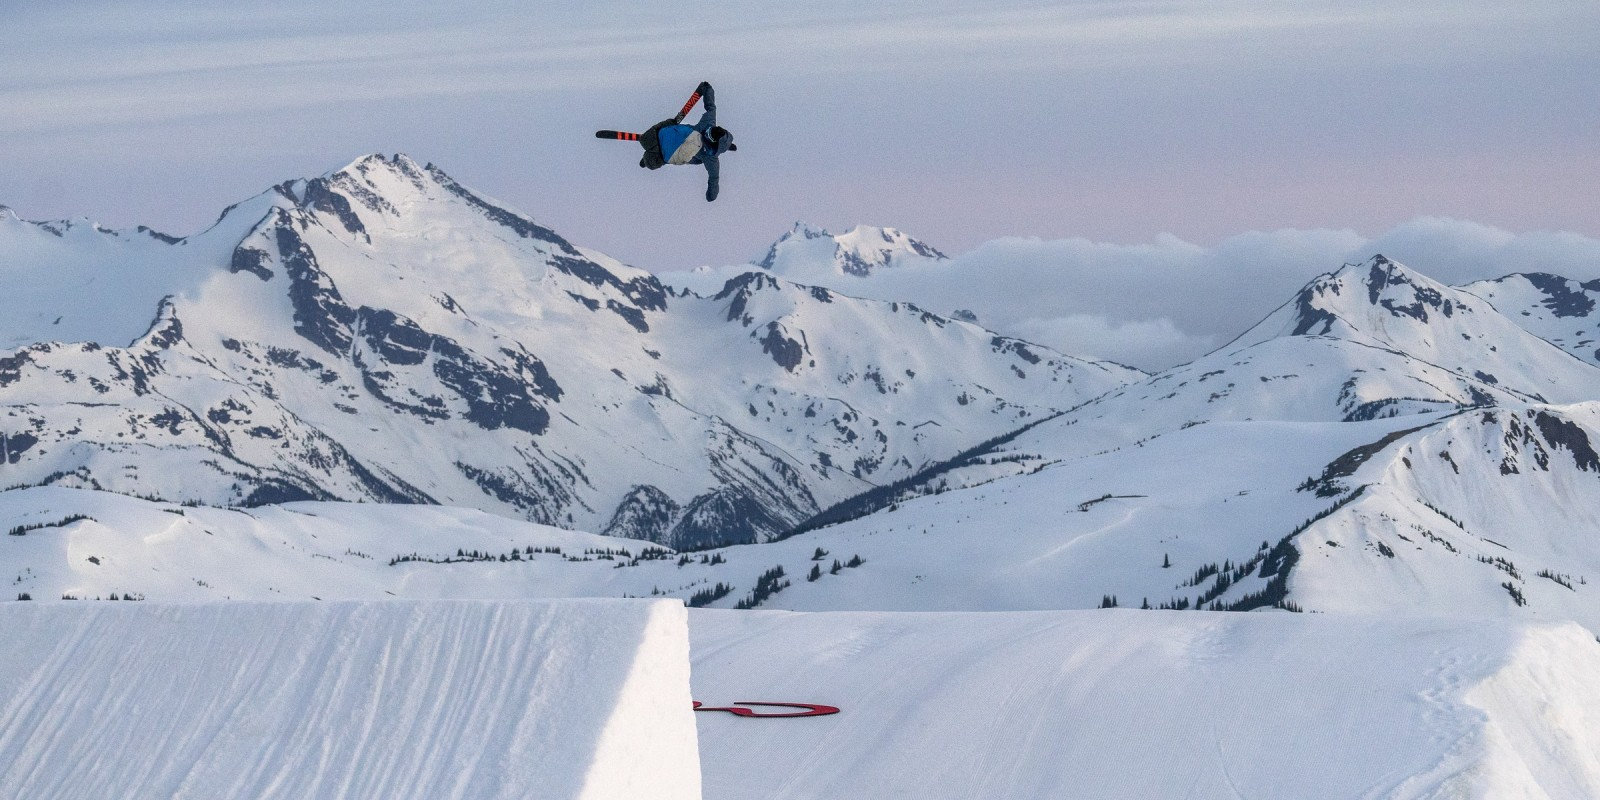 Chris Laker shooting with Good Company on Whistler Blackcomb in Canada